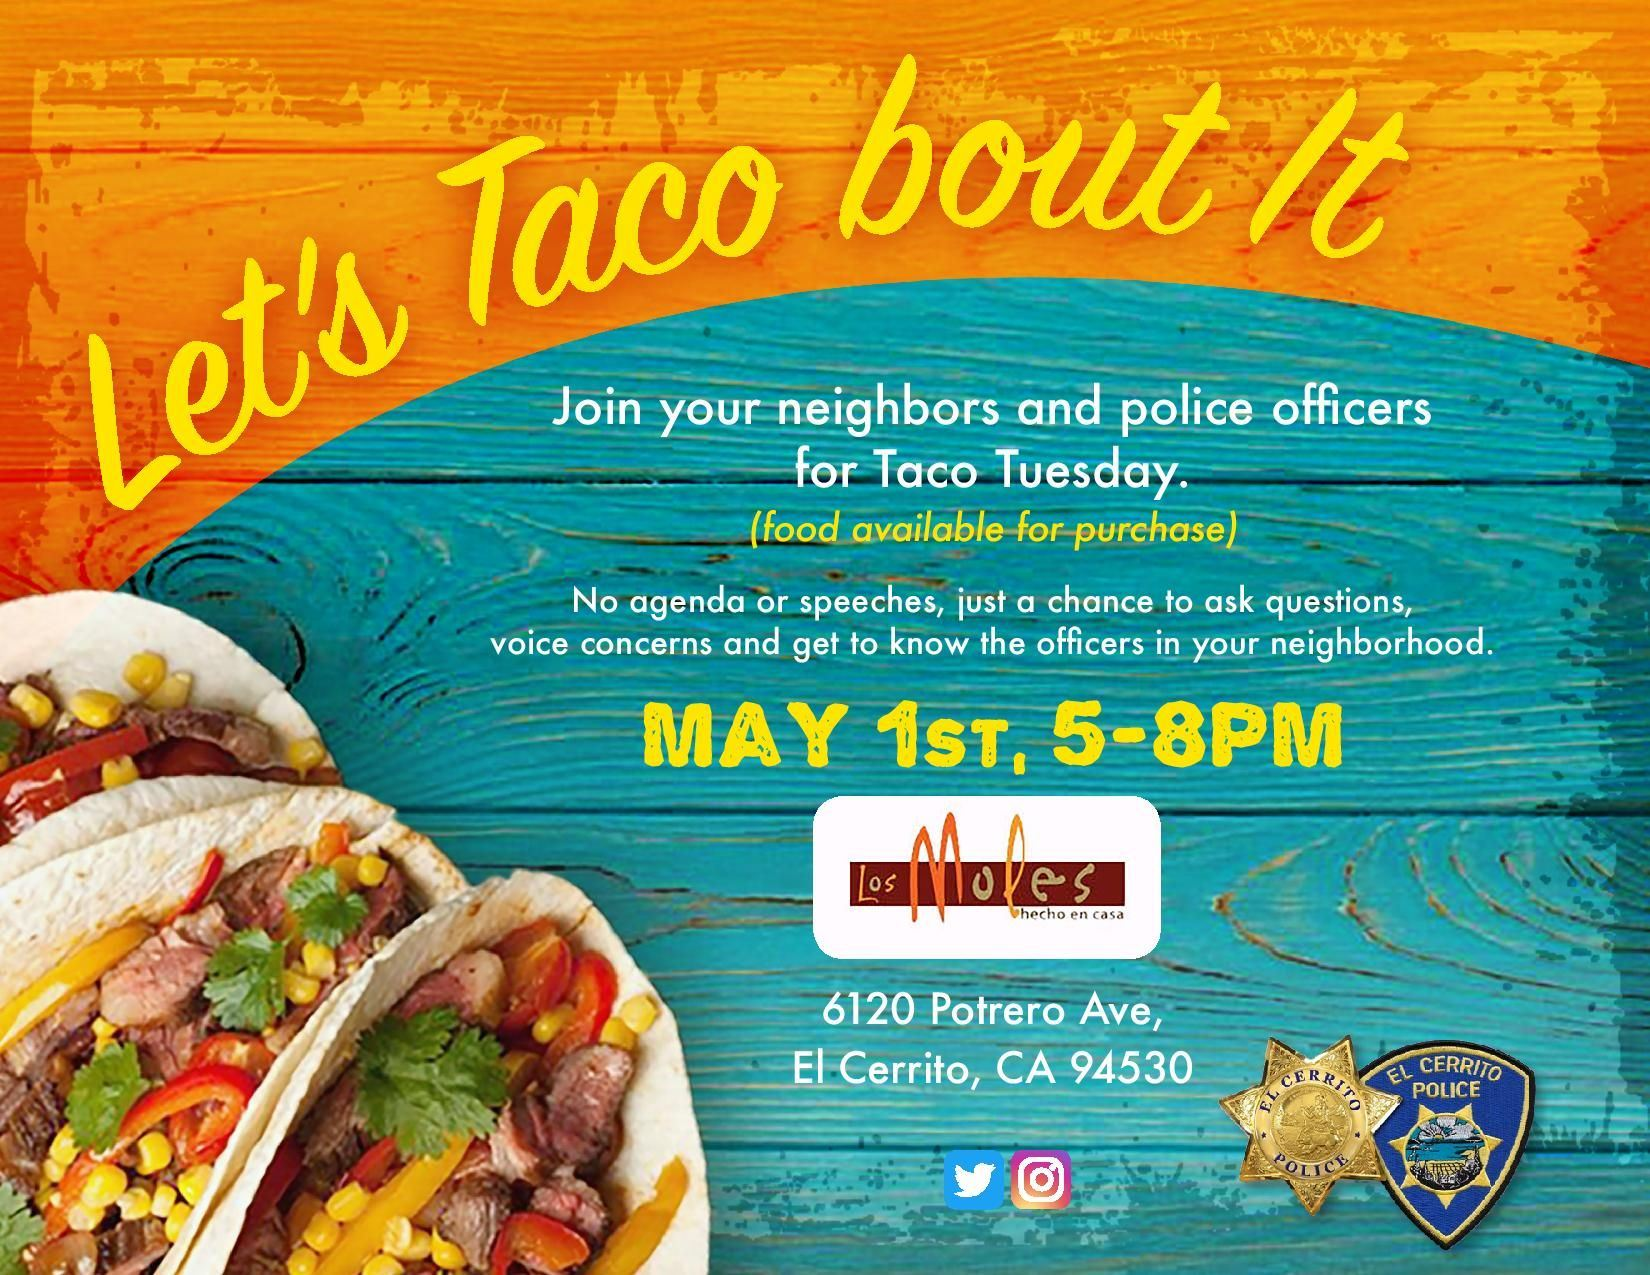 El Cerrito PD Taco Event Flyer-page-001